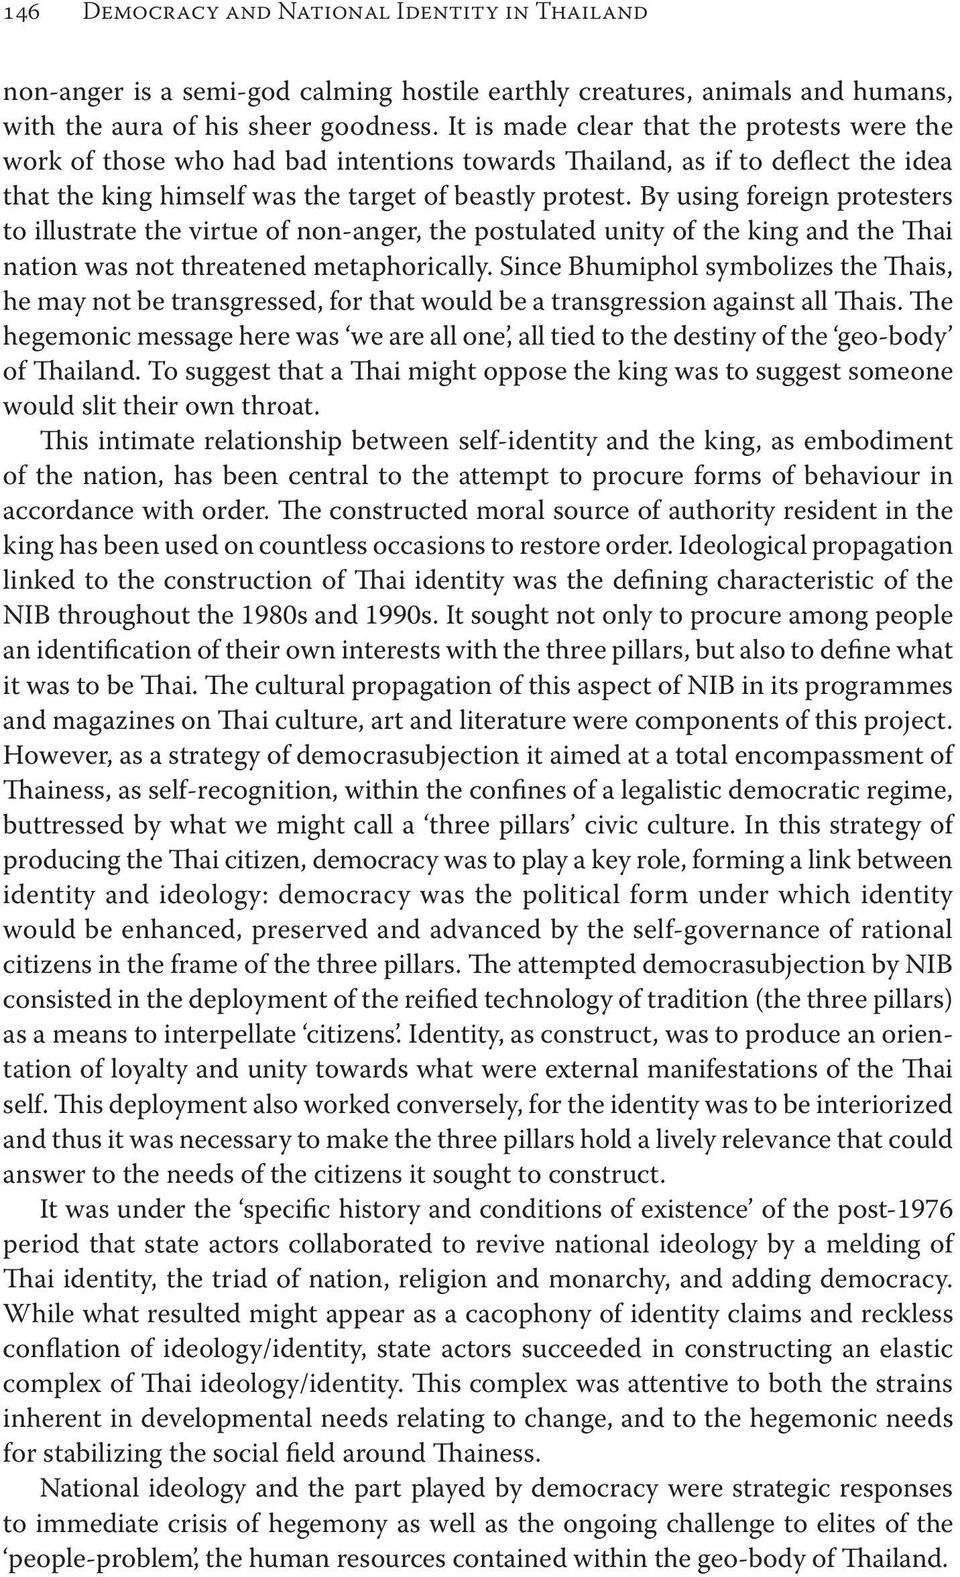 By using foreign protesters to illustrate the virtue of non-anger, the postulated unity of the king and the Thai nation was not threatened metaphorically.